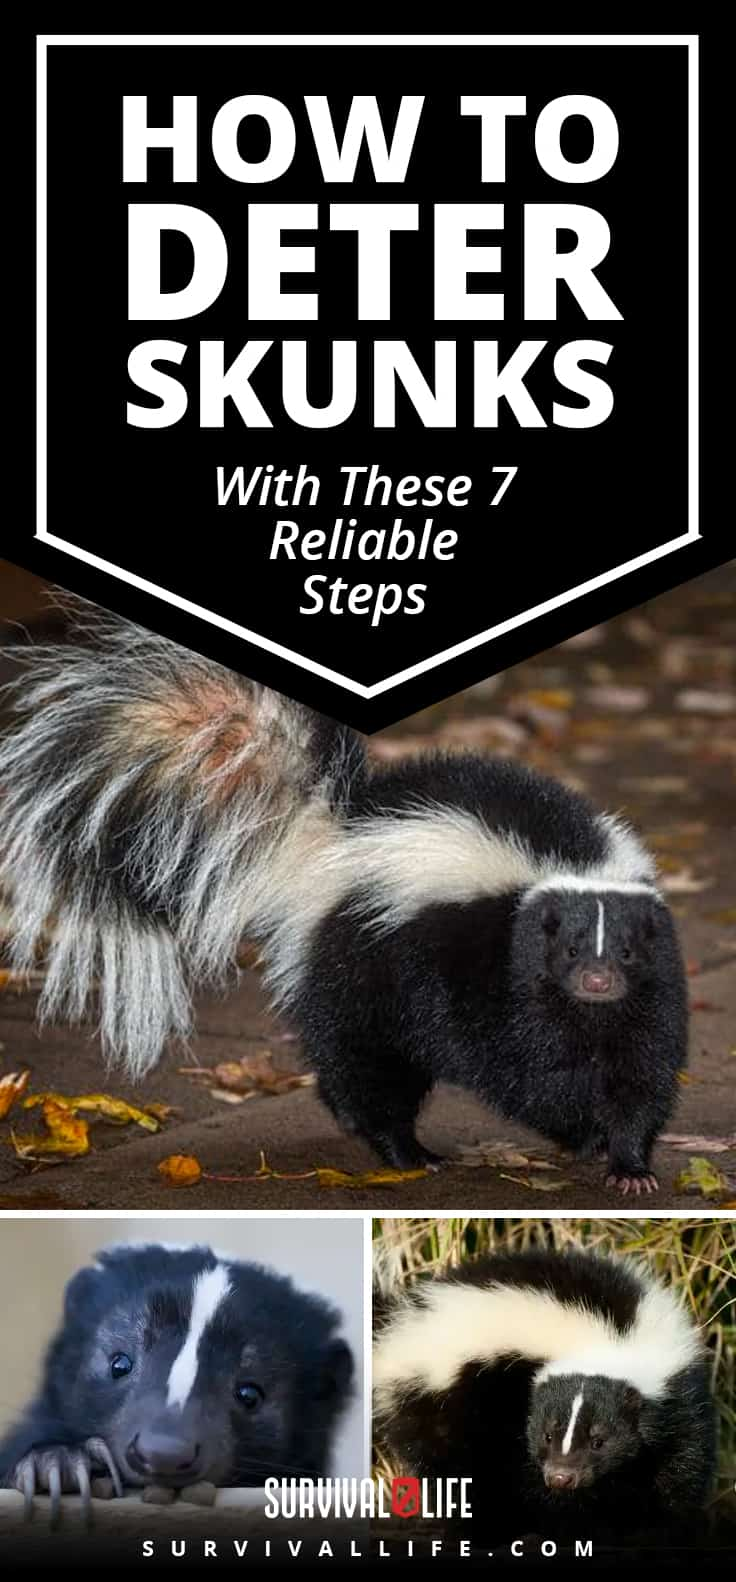 How To Deter Skunks With These 7 Reliable Steps | https://survivallife.com/deter-skunks/ ‎